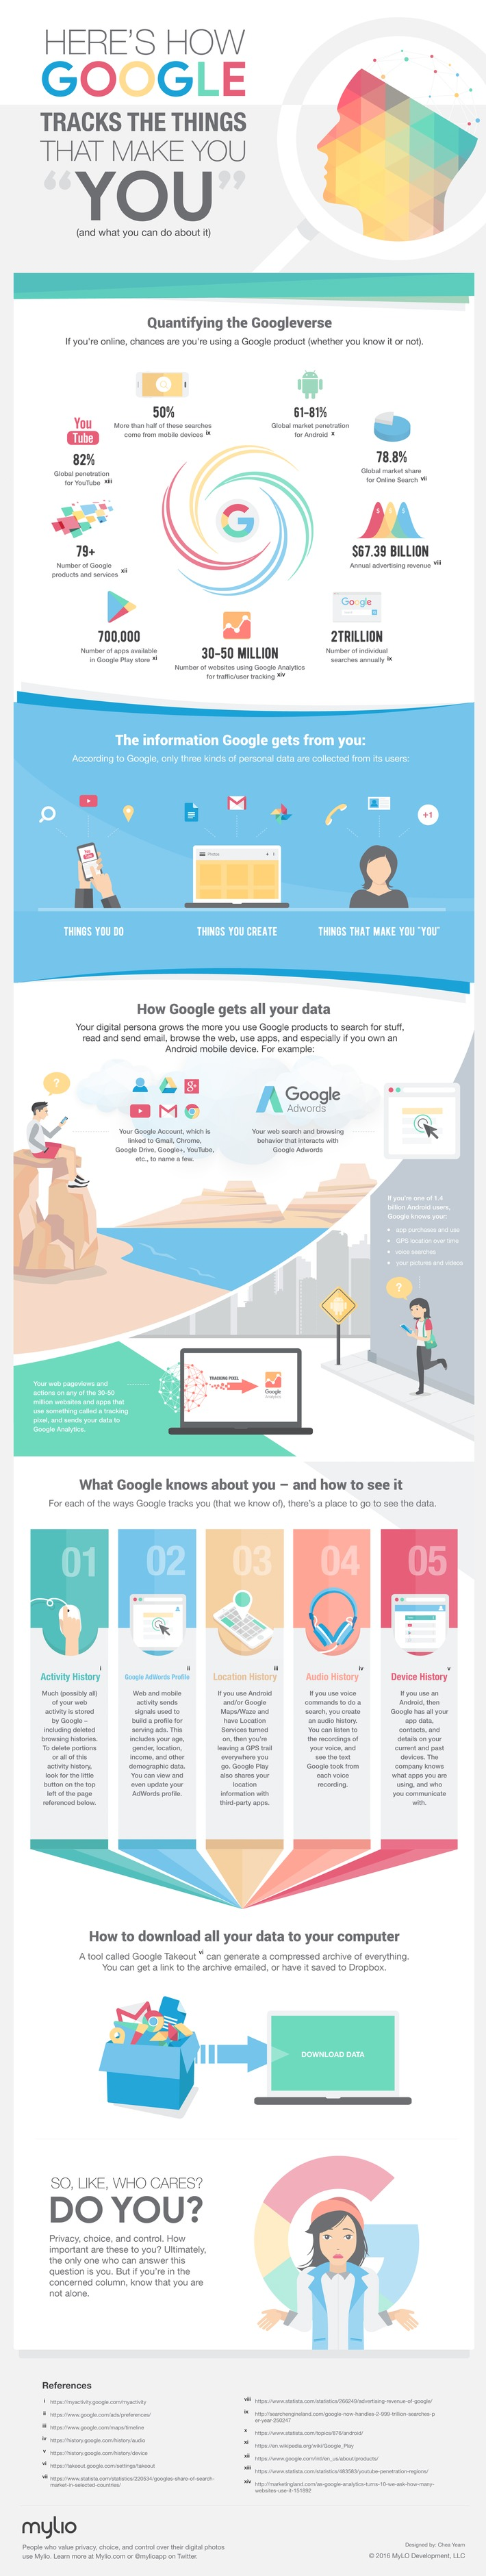 INFOGRAPHIC: Here's How Google Tracks You - and What You Can Do About It | Digital Transformation of Businesses | Scoop.it